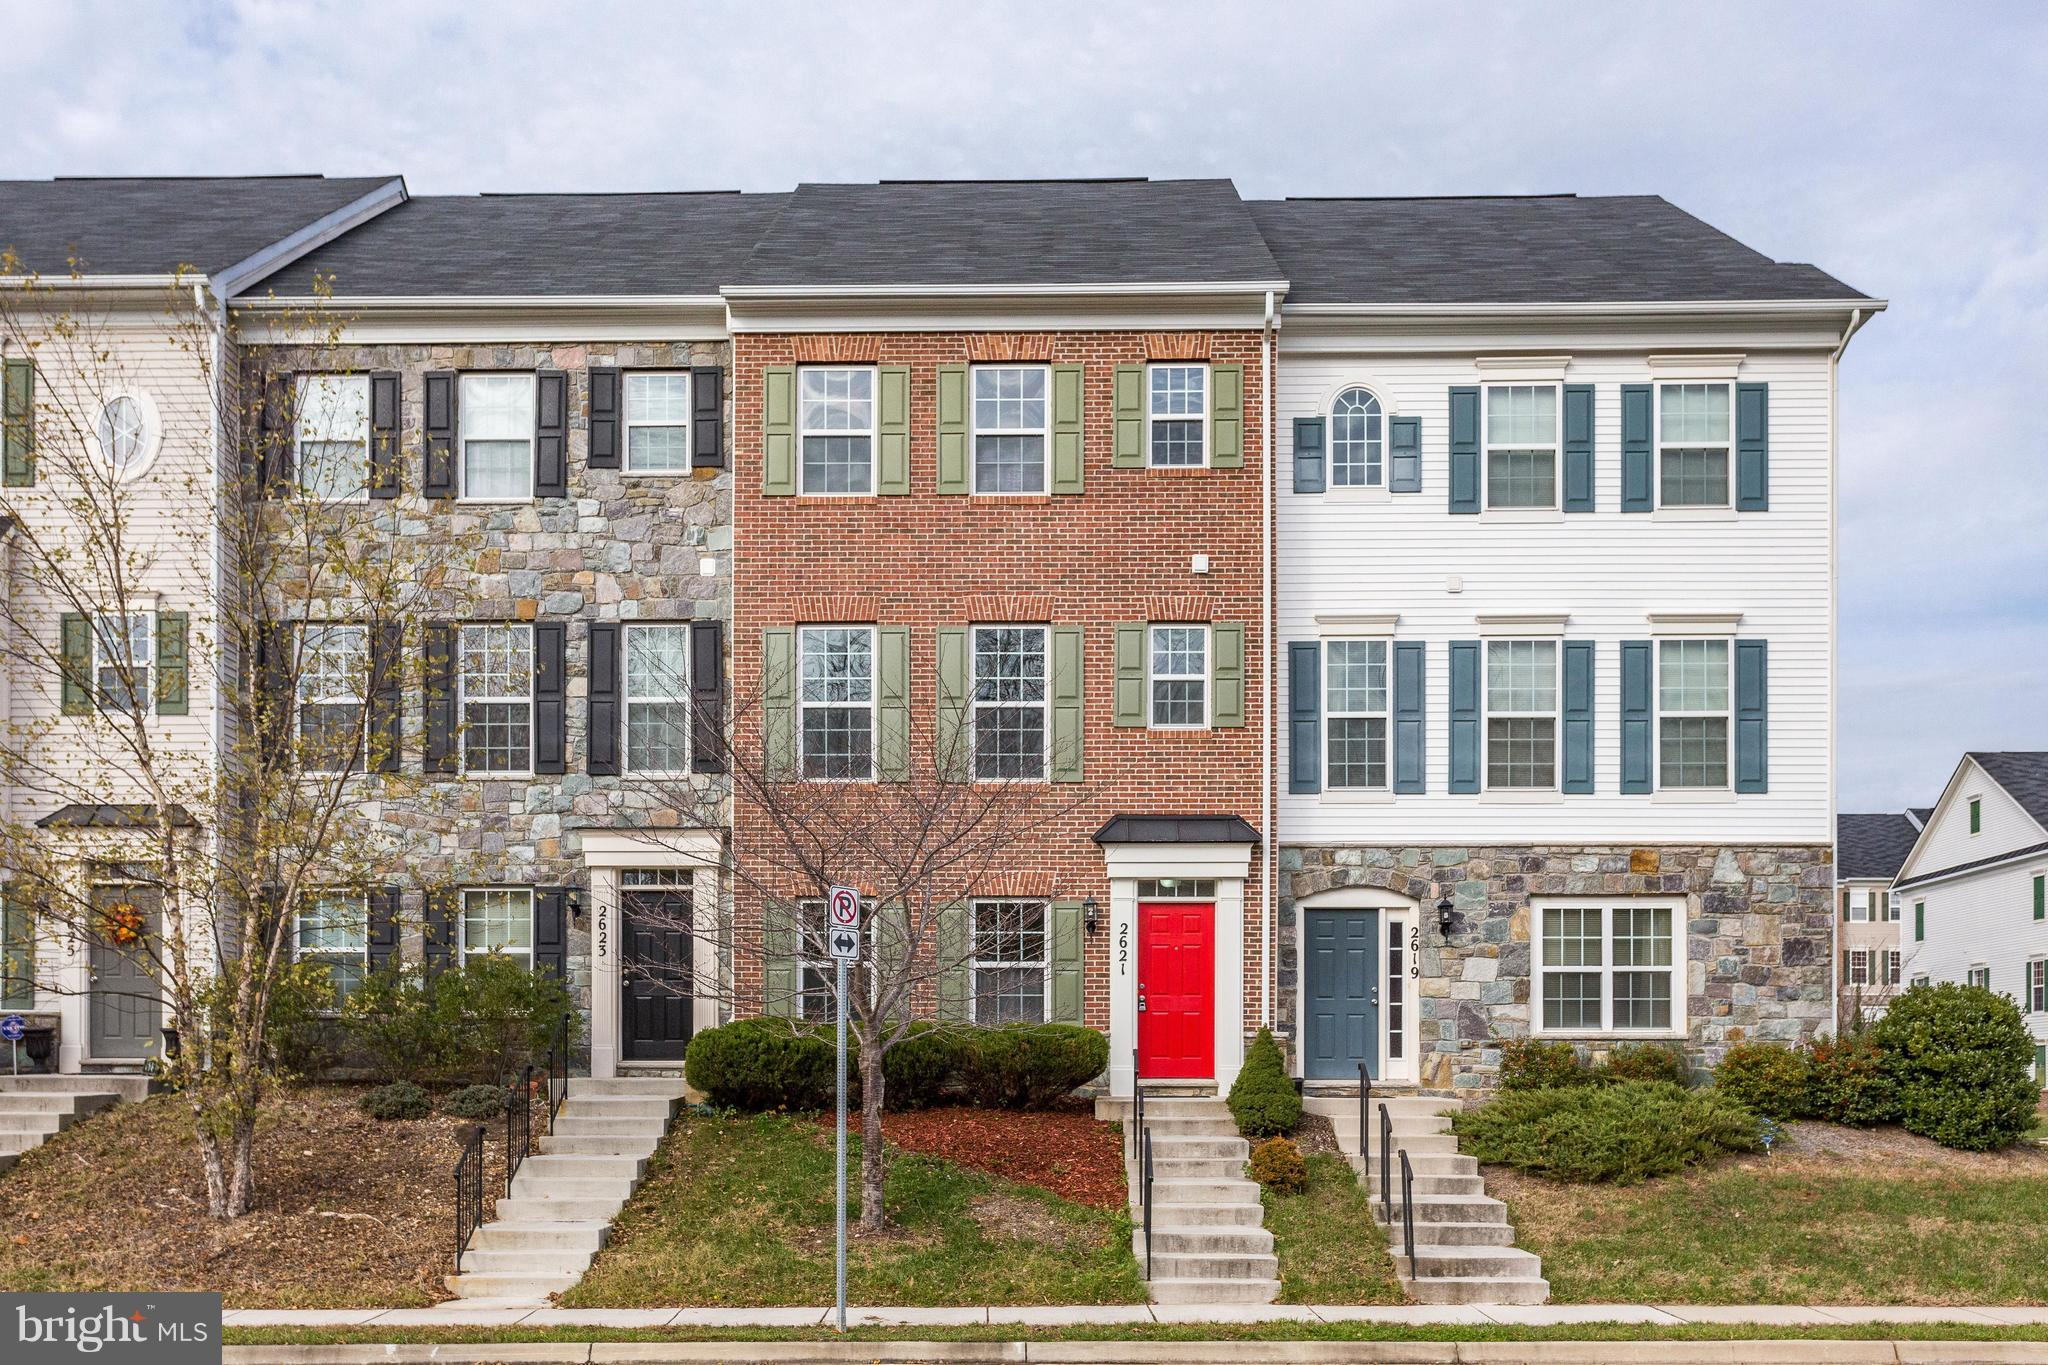 Fantastic renovation of this 3BR/2.5BA 3-level townhome in River Oaks! New hardwood flooring! Granite kitchen w/ island, new SS appliances & gas cooking! Master suite w/ double vanities, soaking tub & separate shower! Vaulted ceilings! 2 car rear entry garage! Trex deck! More photos in tour!